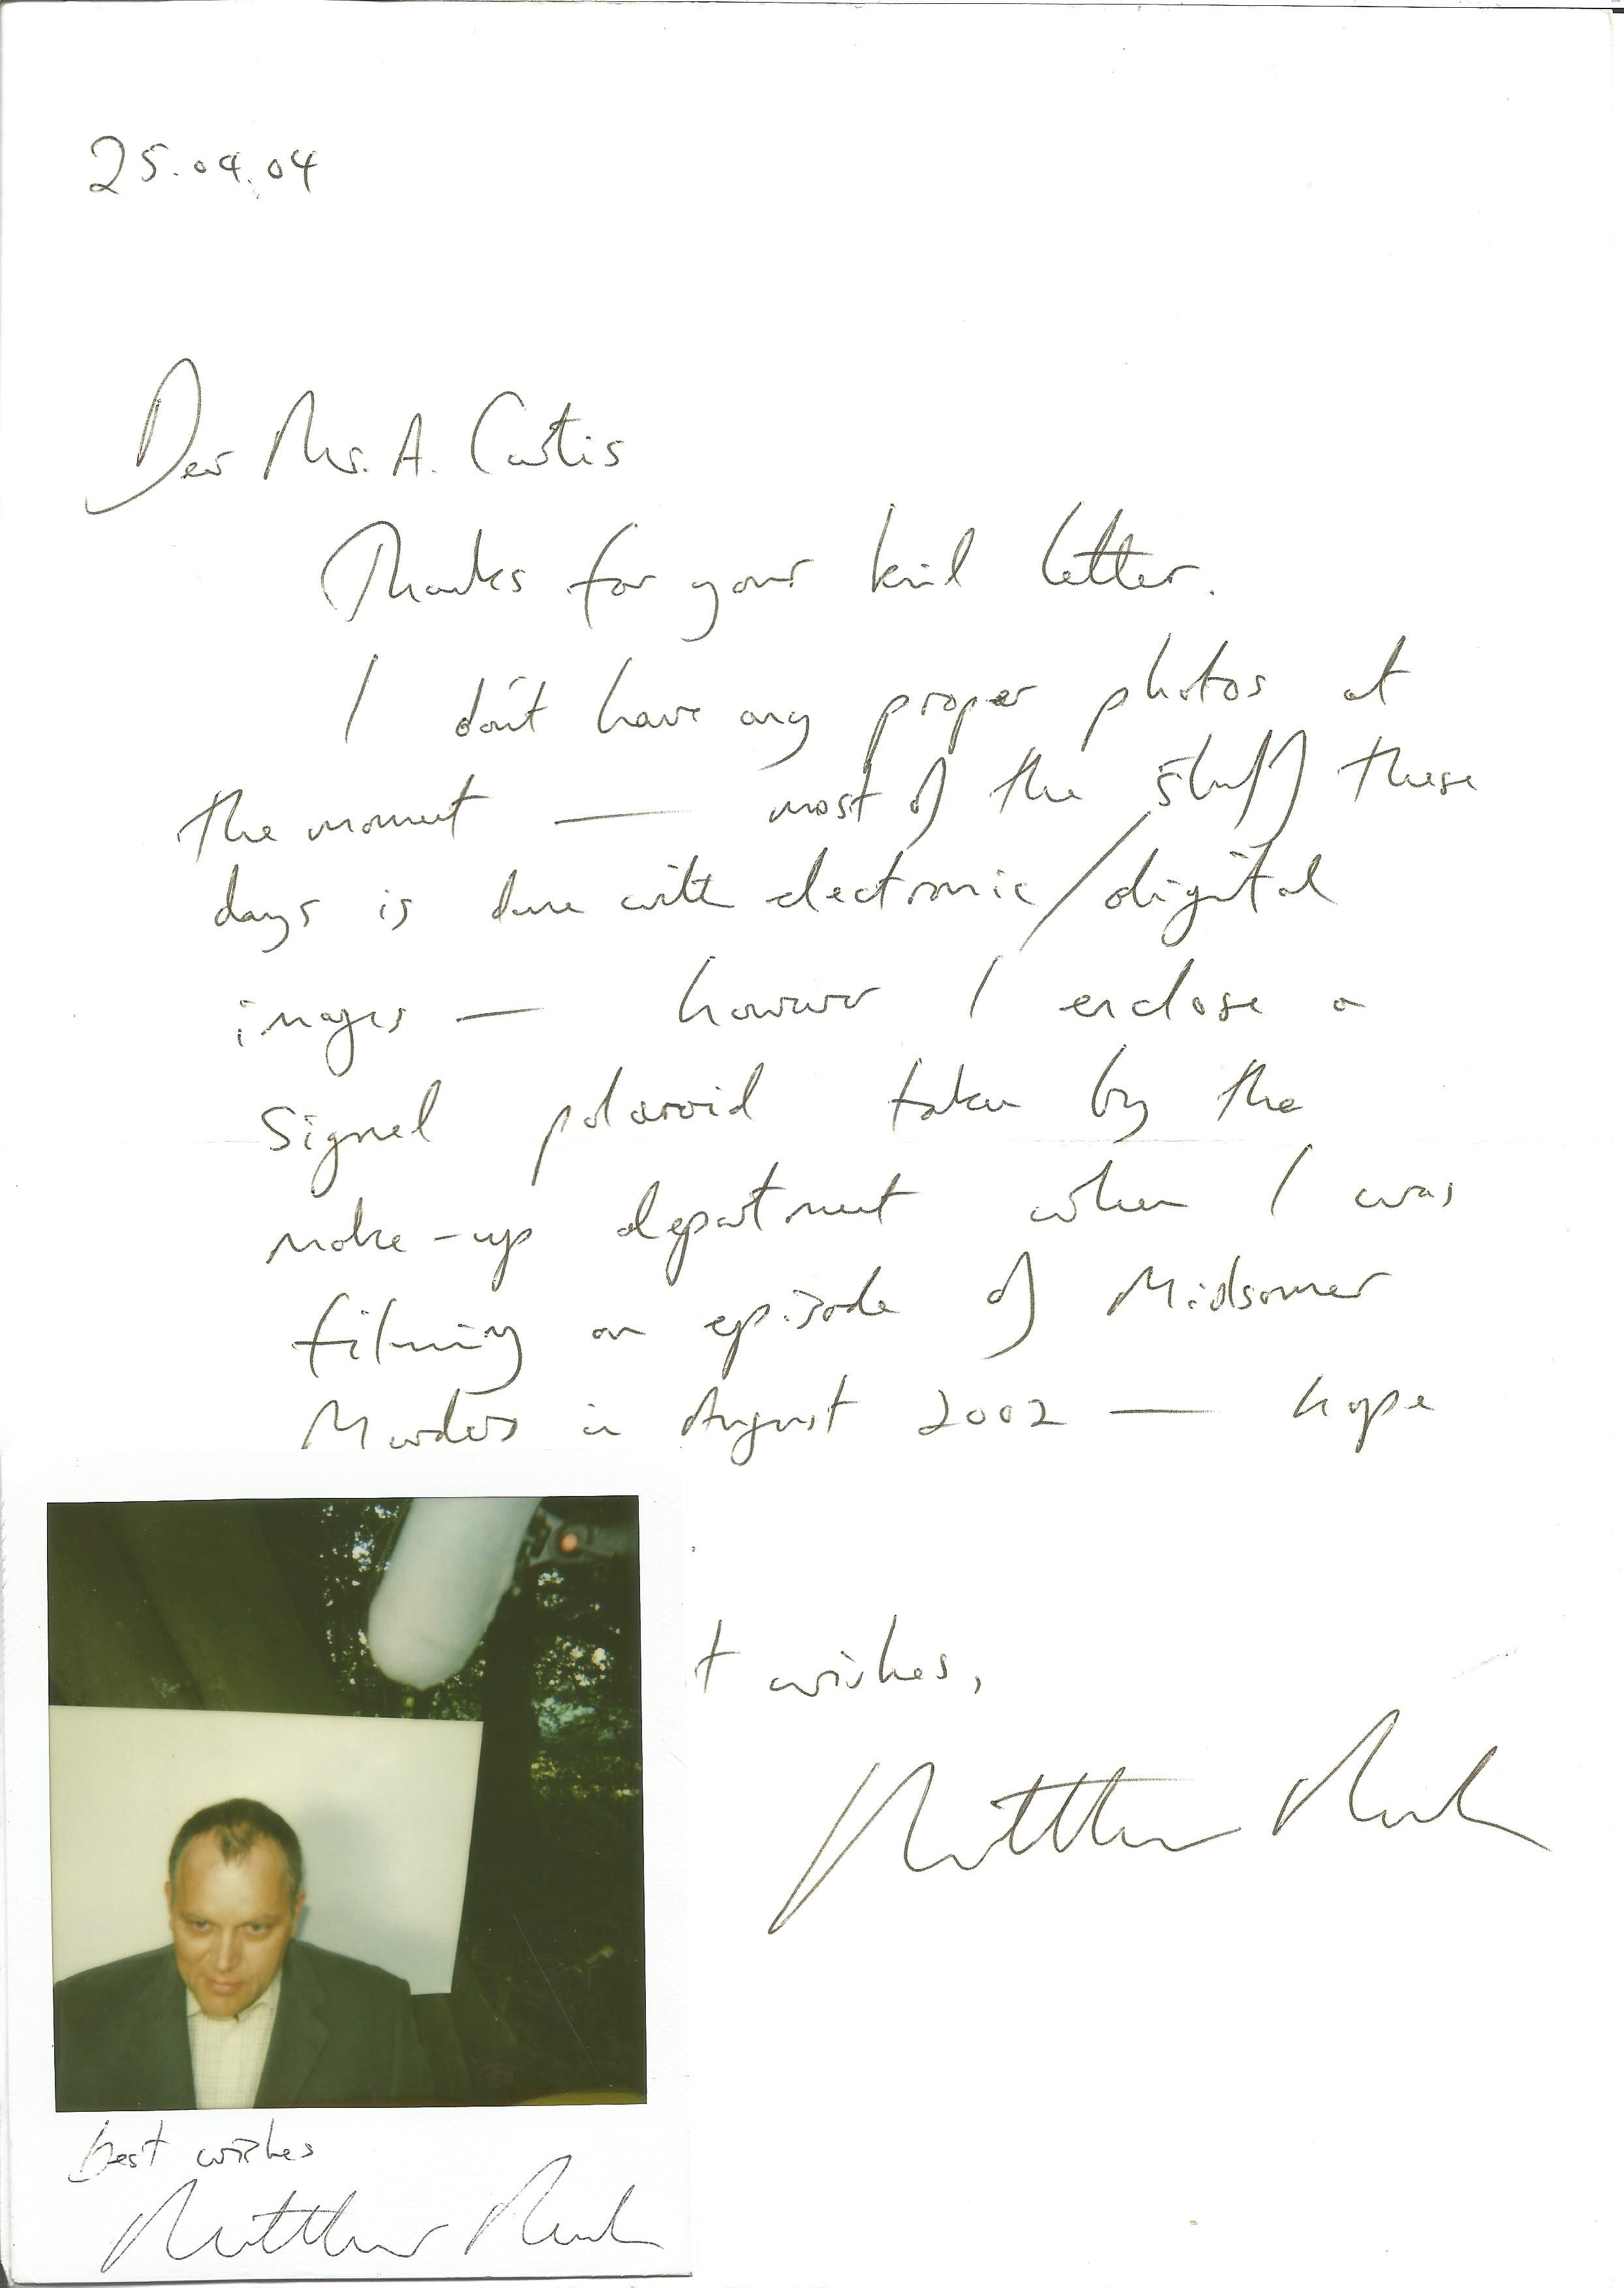 Actors letter collection Graham Bickley, Tim Woodward, Matthew Marsh, Andy Lucas - Image 2 of 3